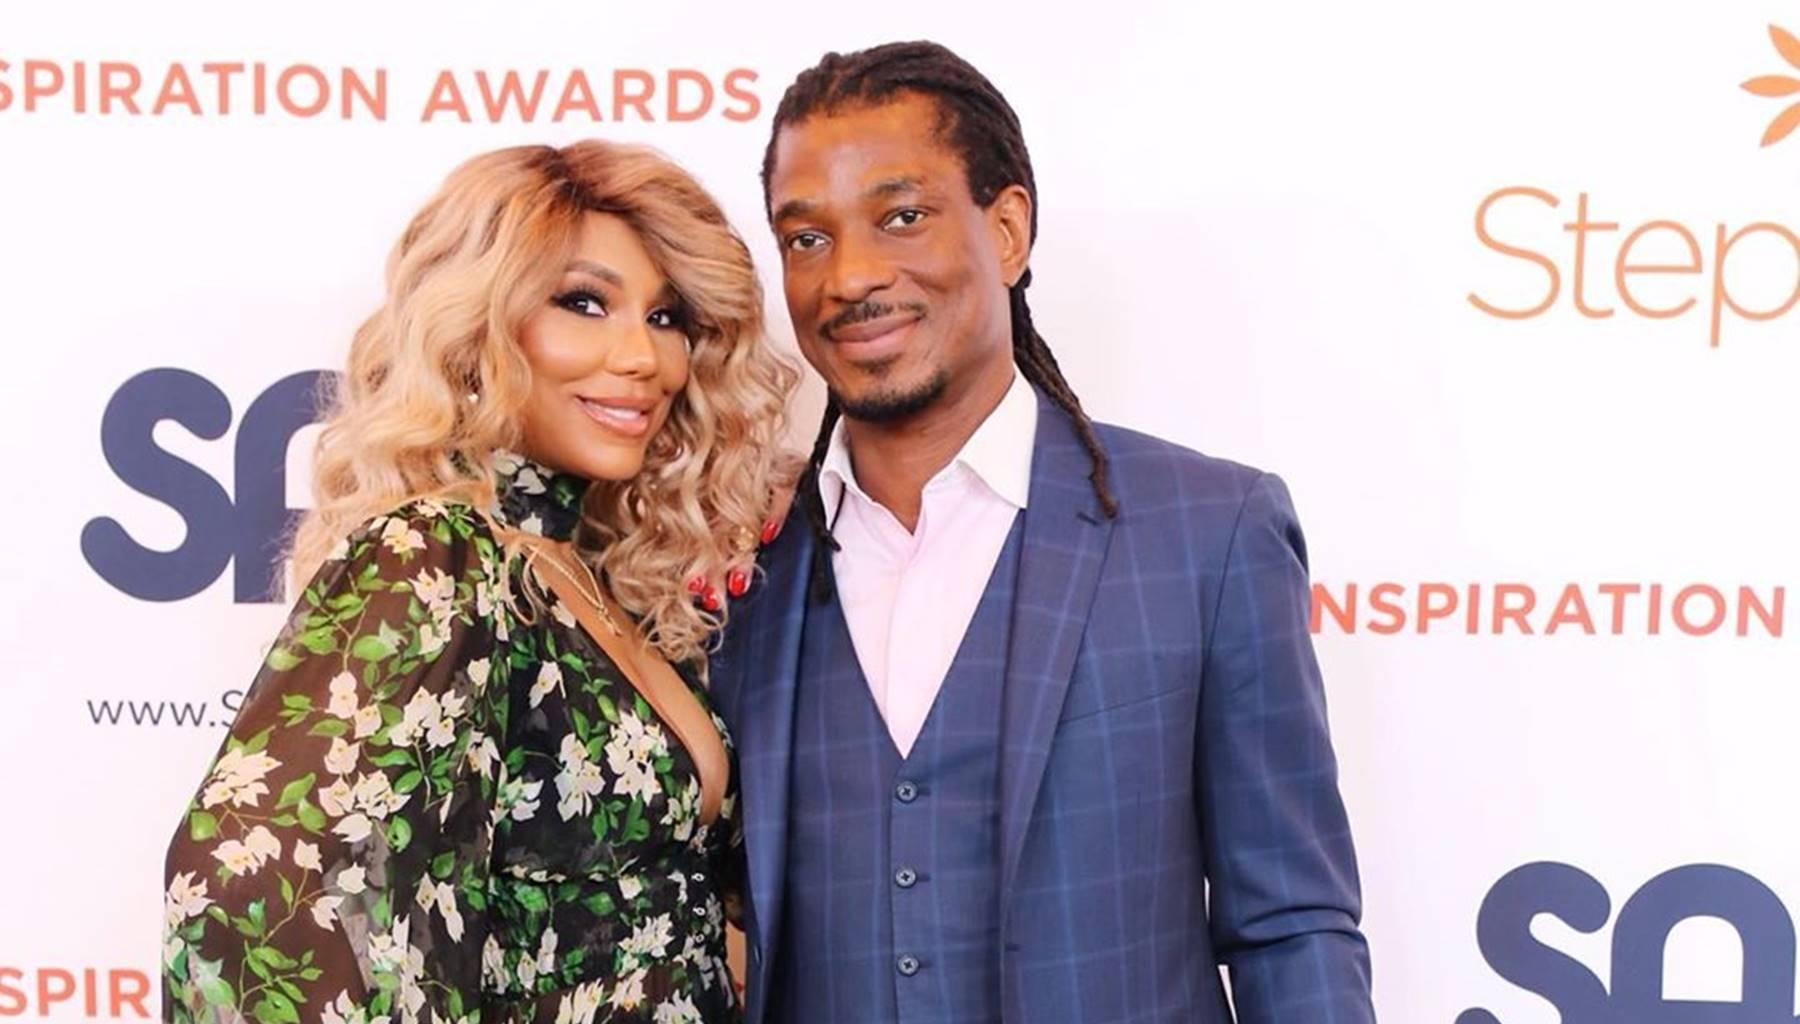 Tamar Braxton's BF, David Adefeso, Surprises Fans With New Financial Advice